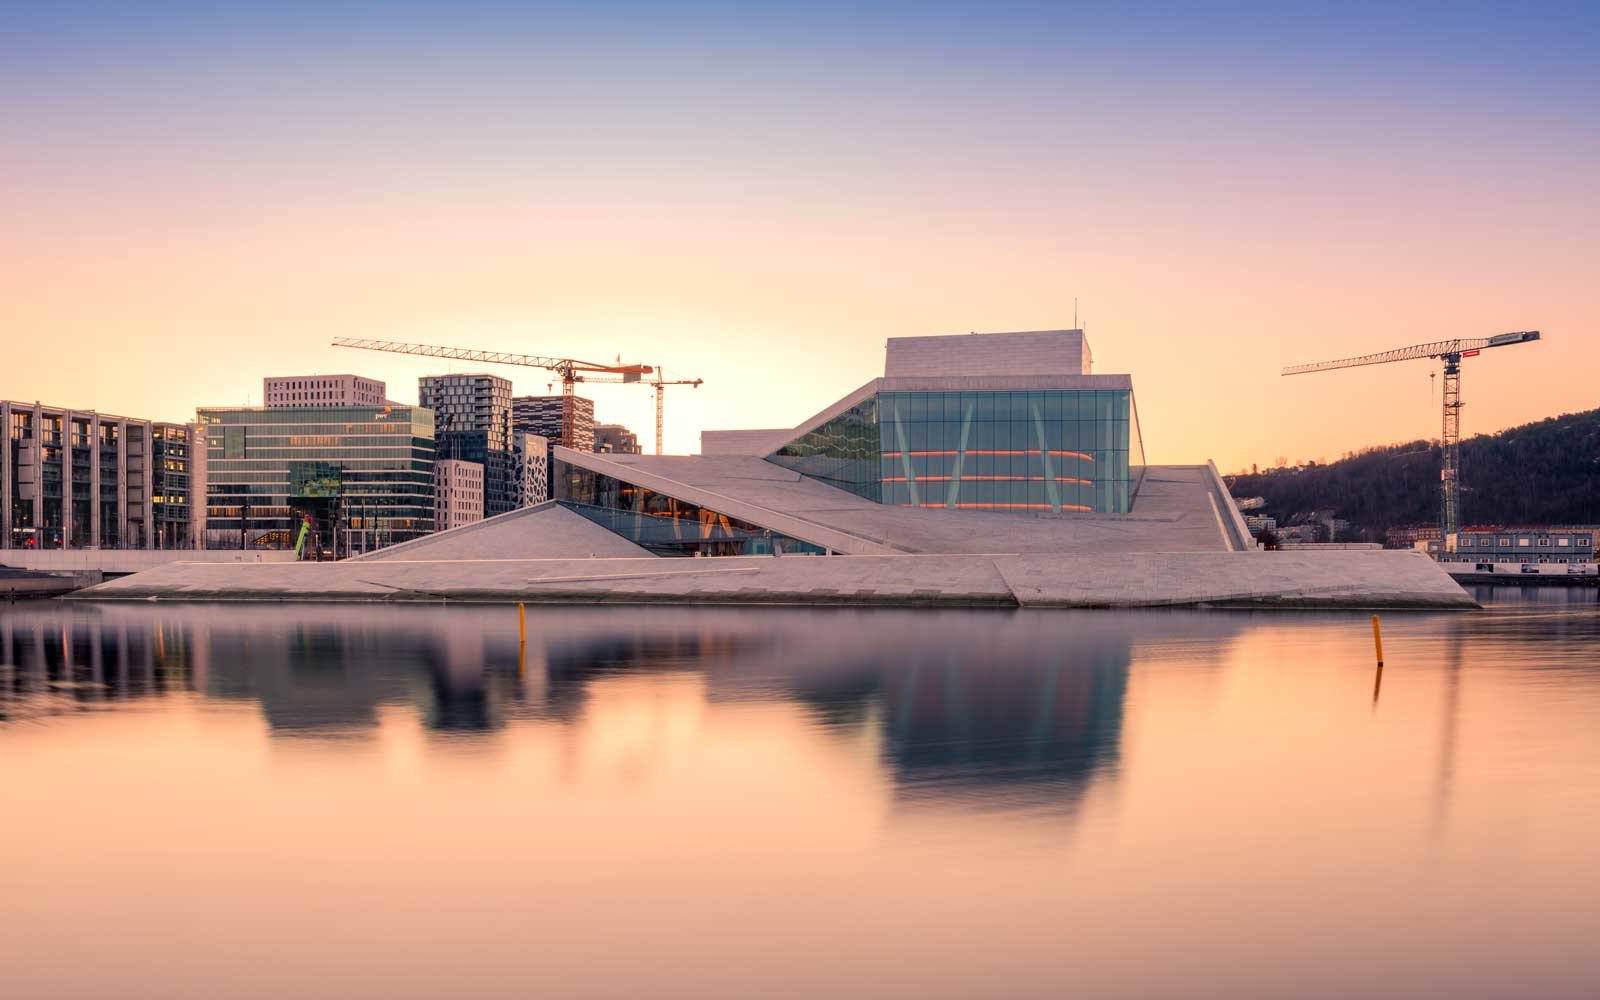 The morning view of Oslo Opera House with water reflection